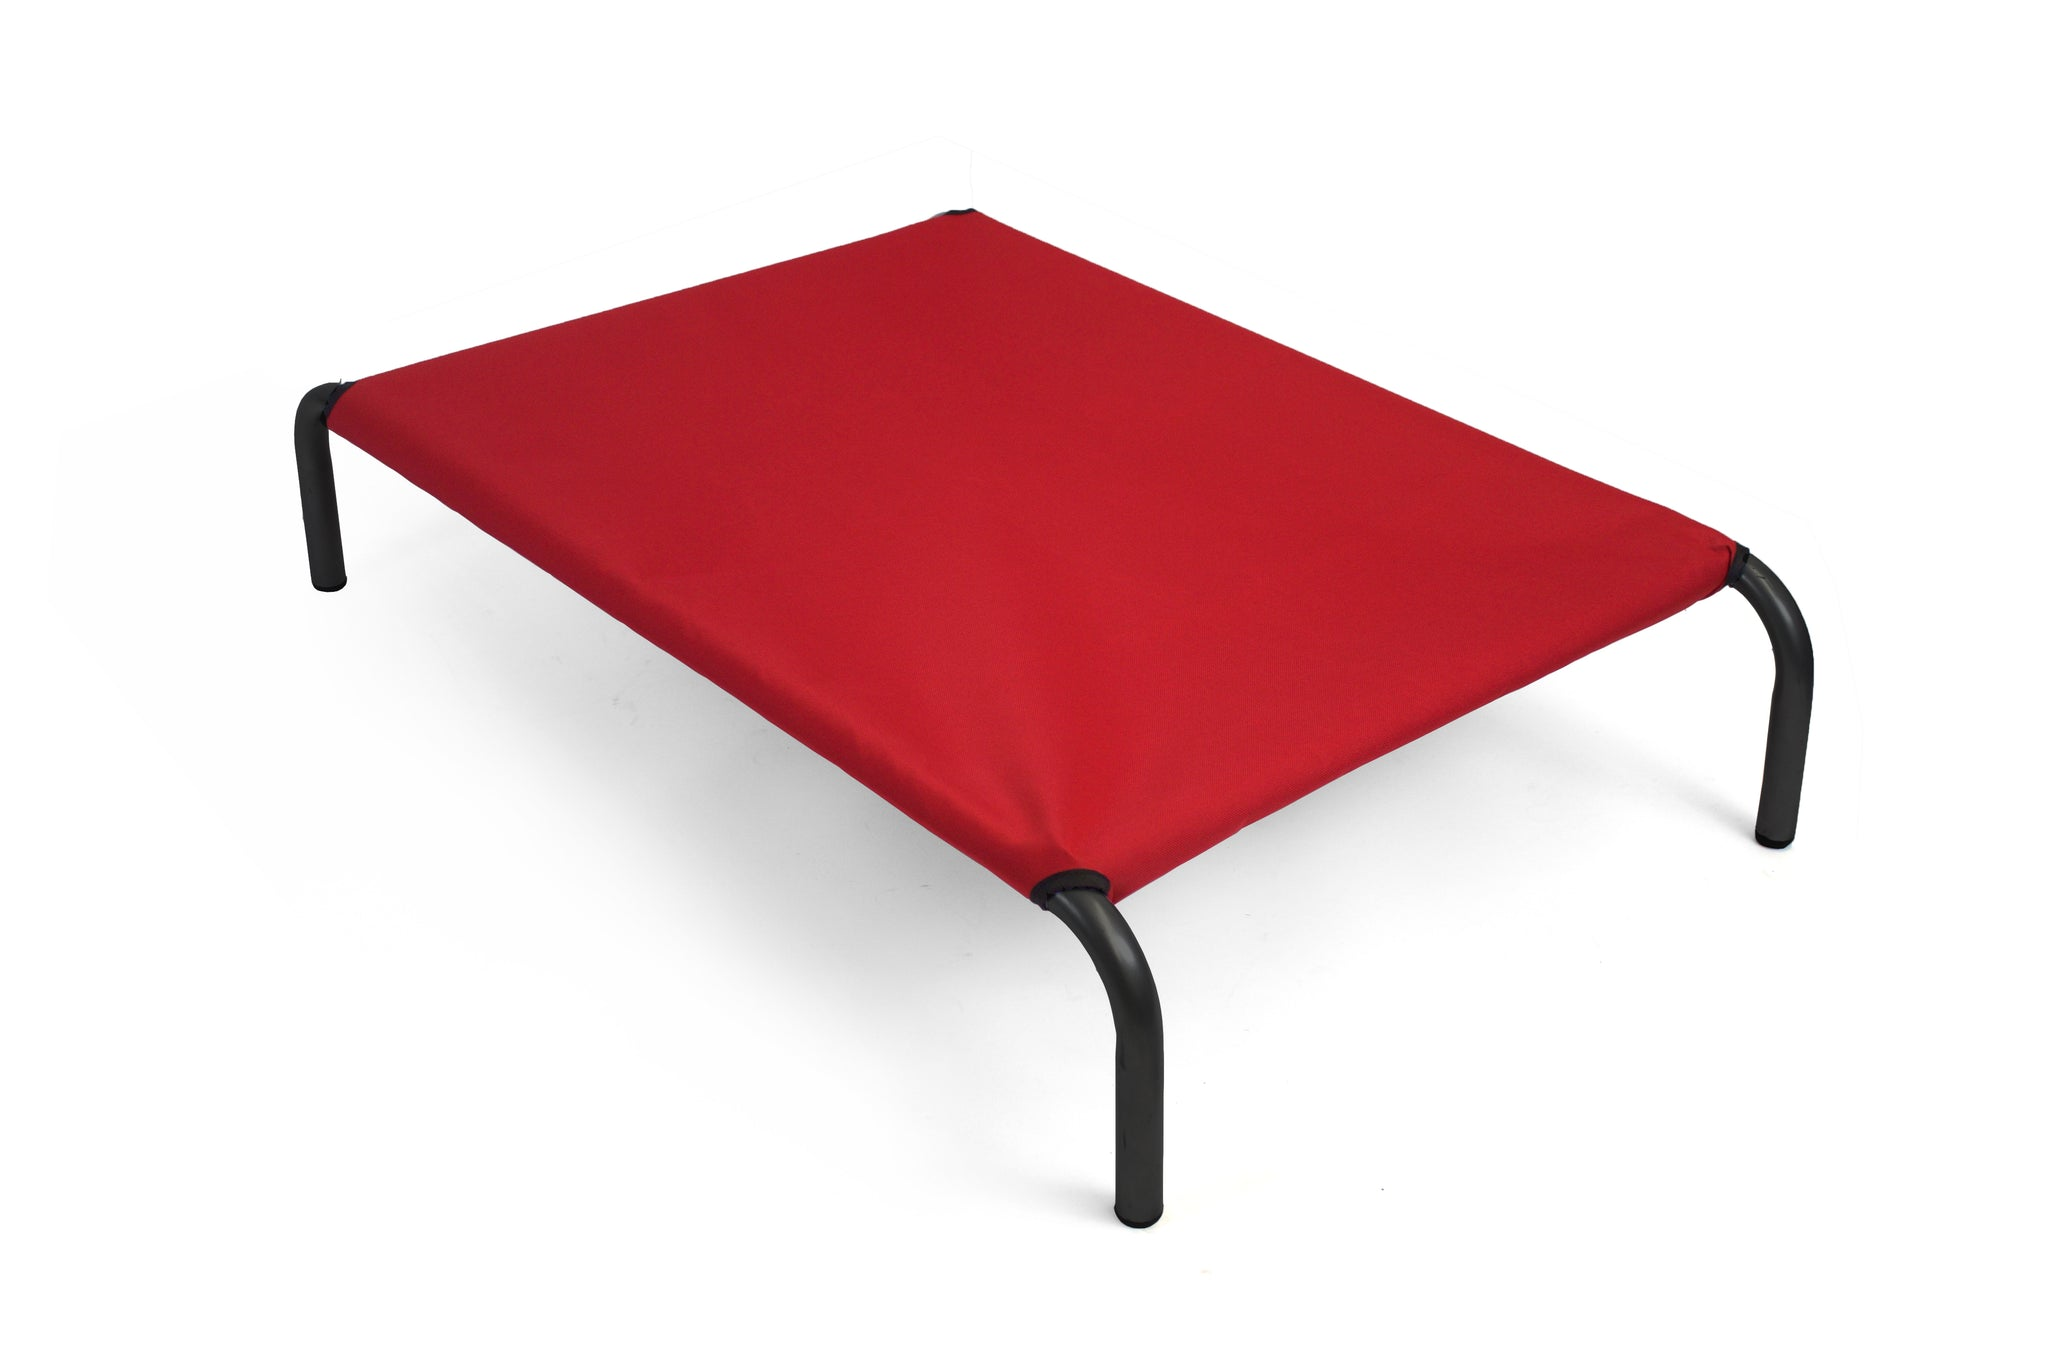 HiK9 Bed with Red Canvas Cover - HiK9